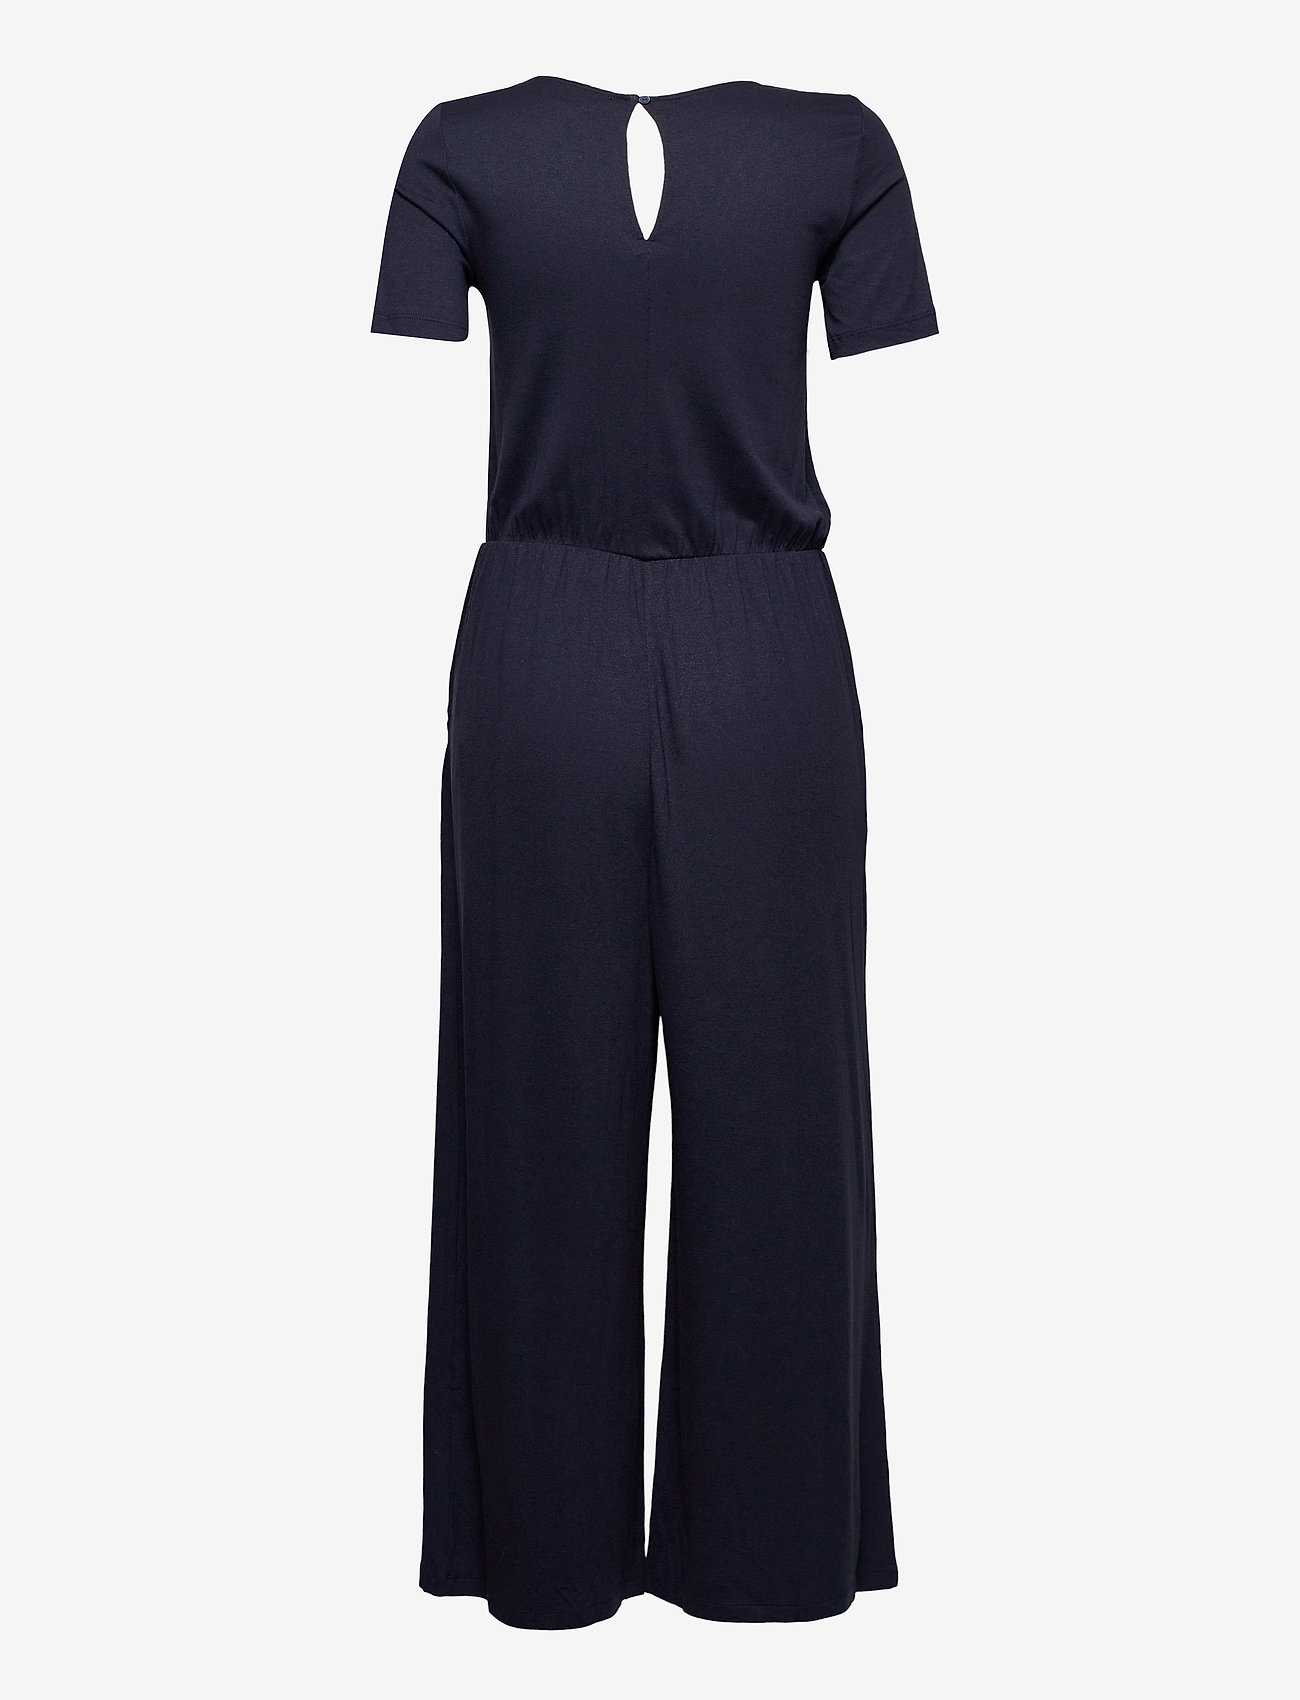 Esprit Casual - Overalls knitted - kleding - navy - 1